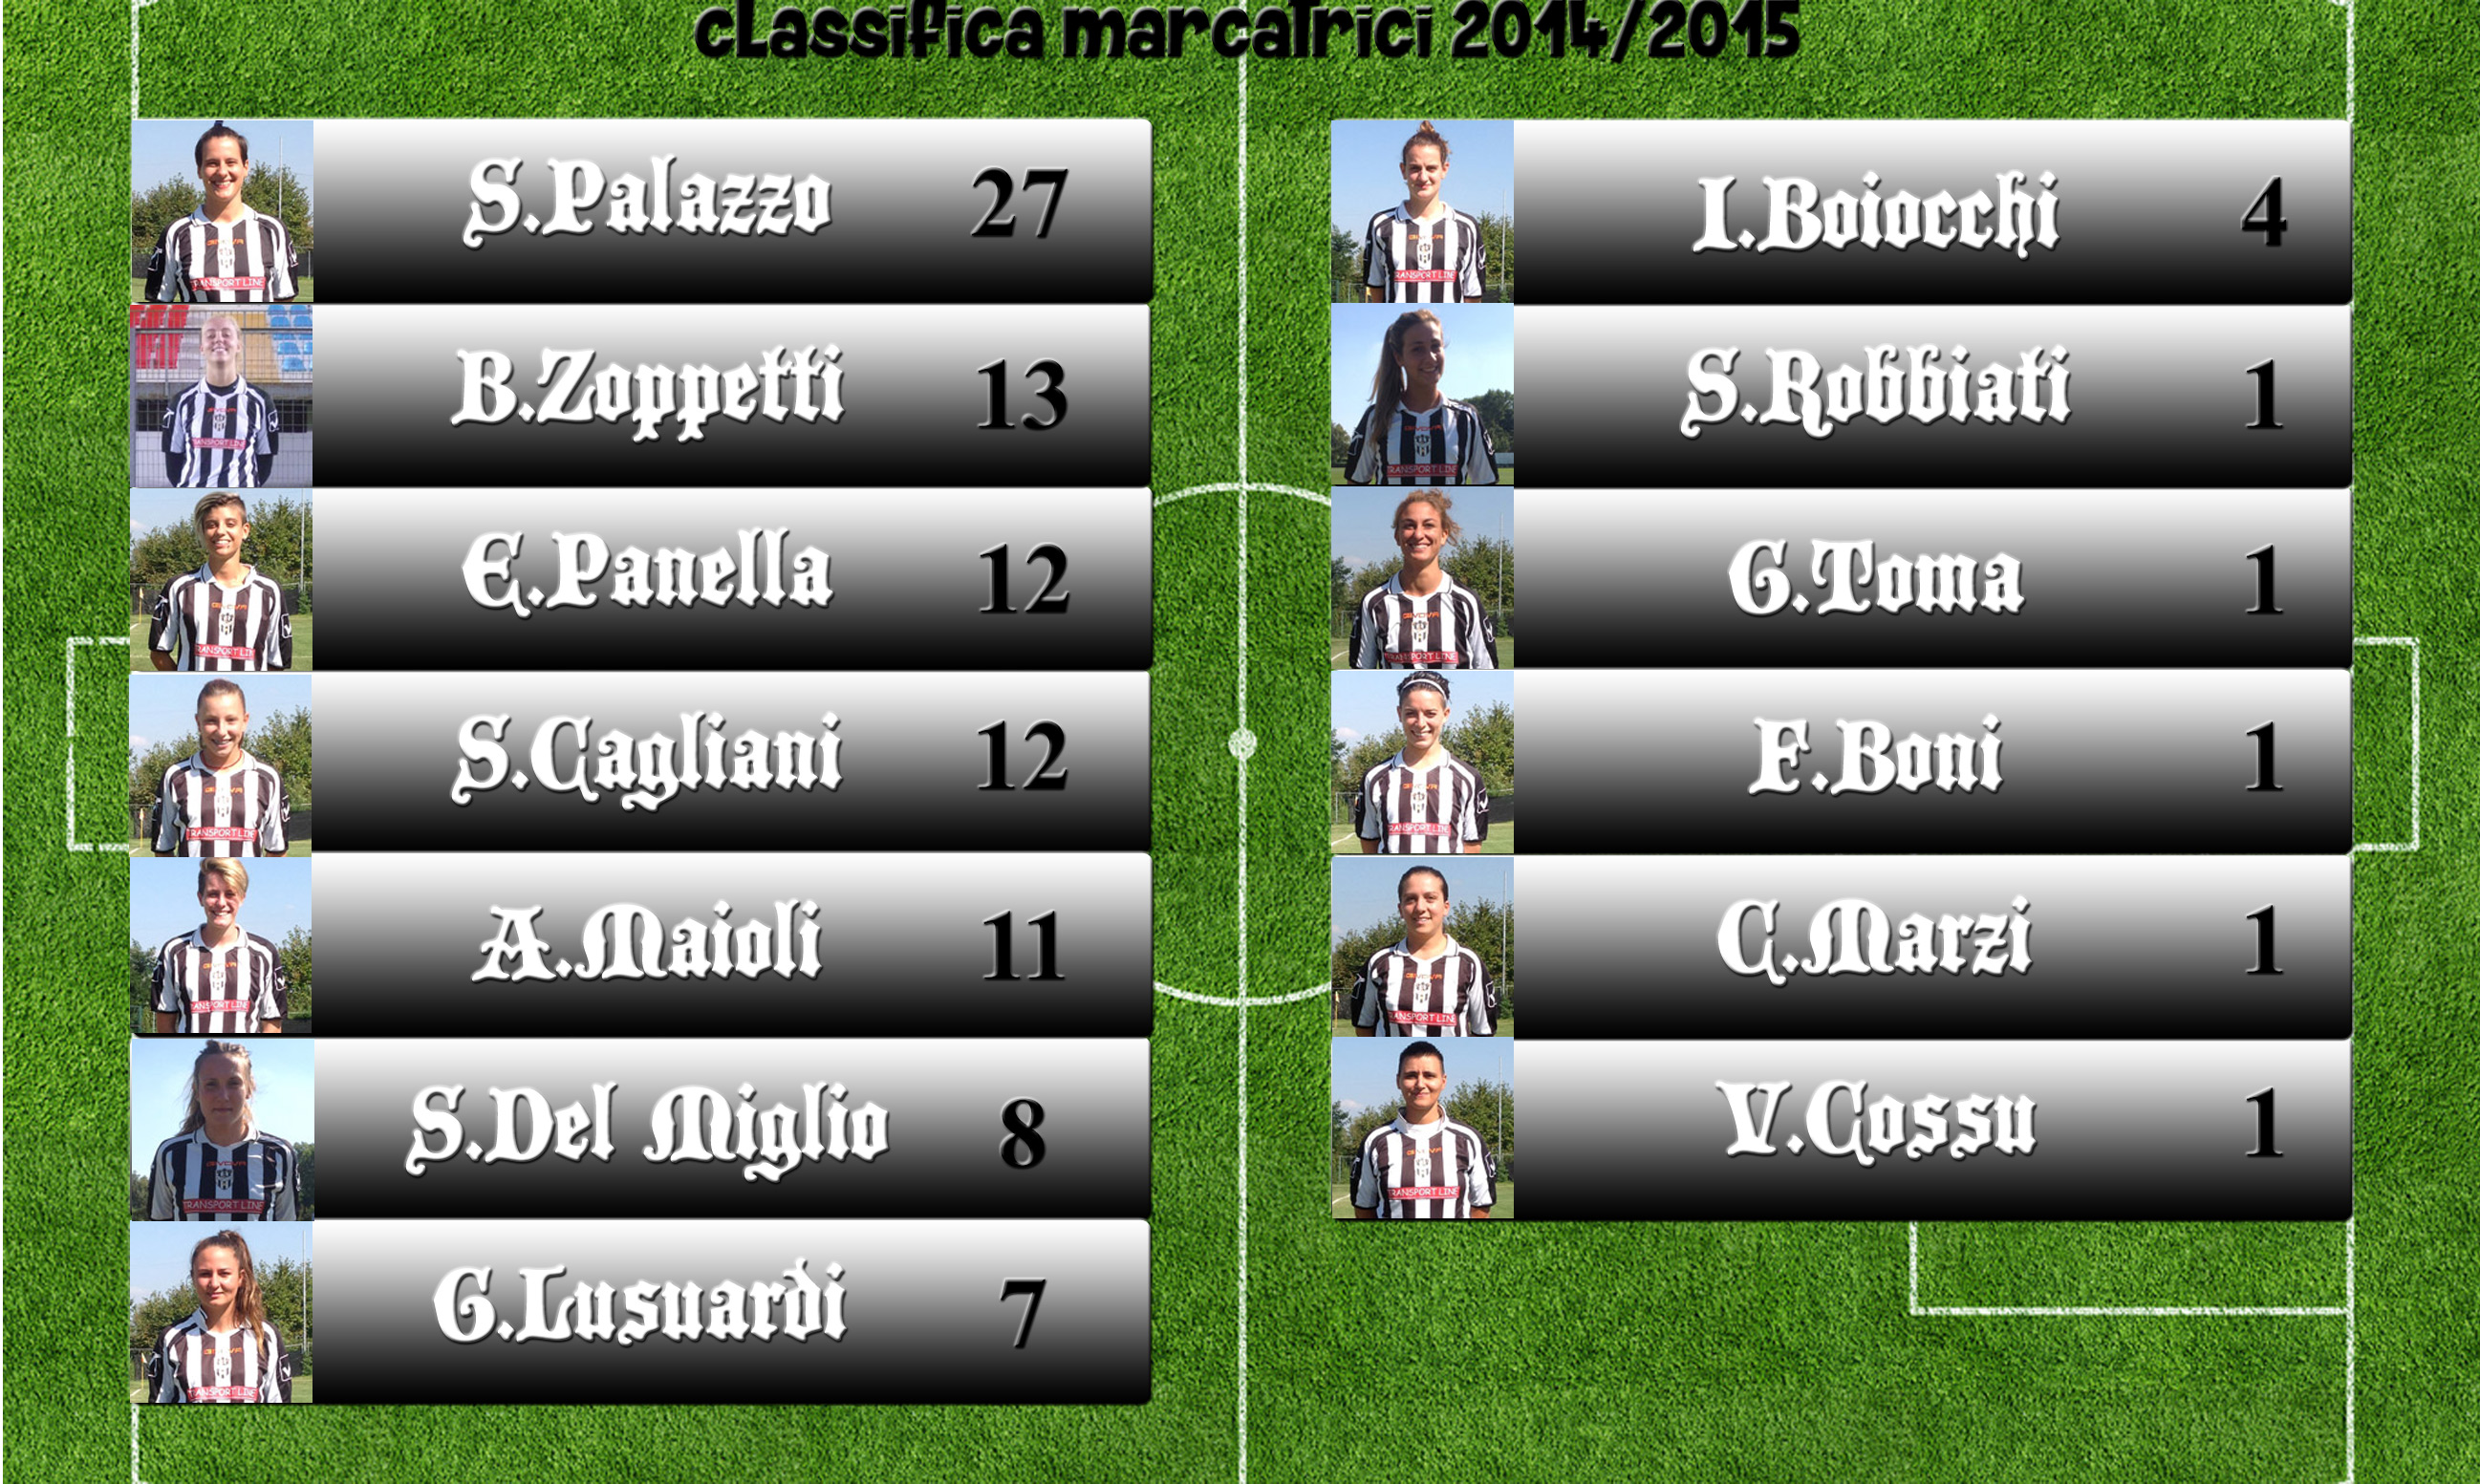 Classifica-marcatrici-22